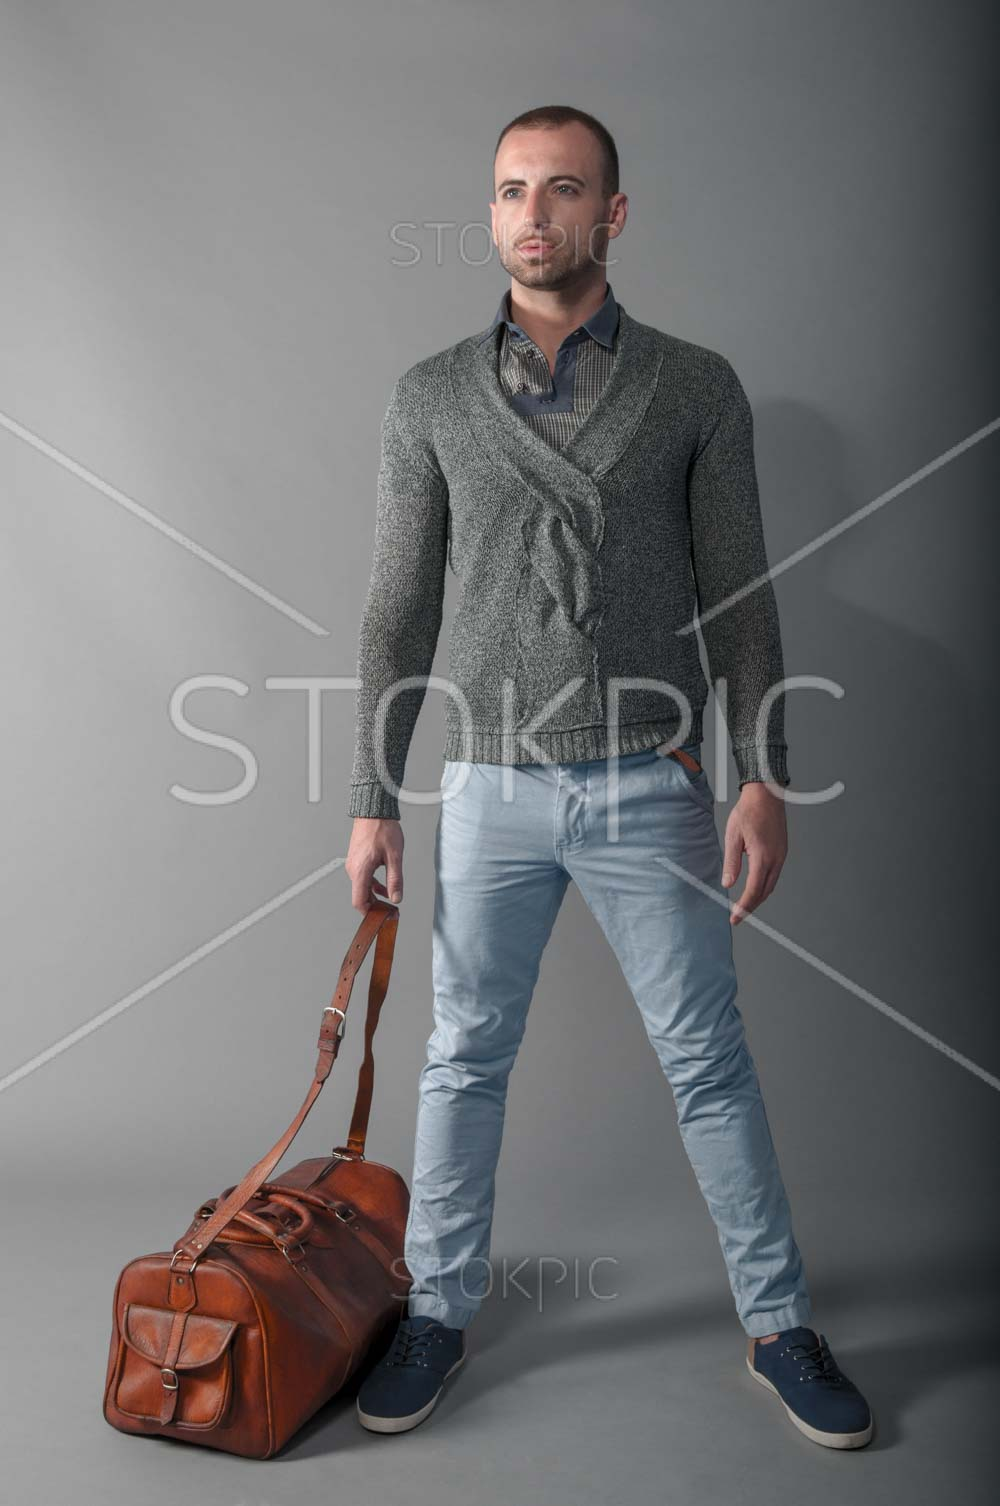 Man In Autumn Fashion With Leather Bag Standing